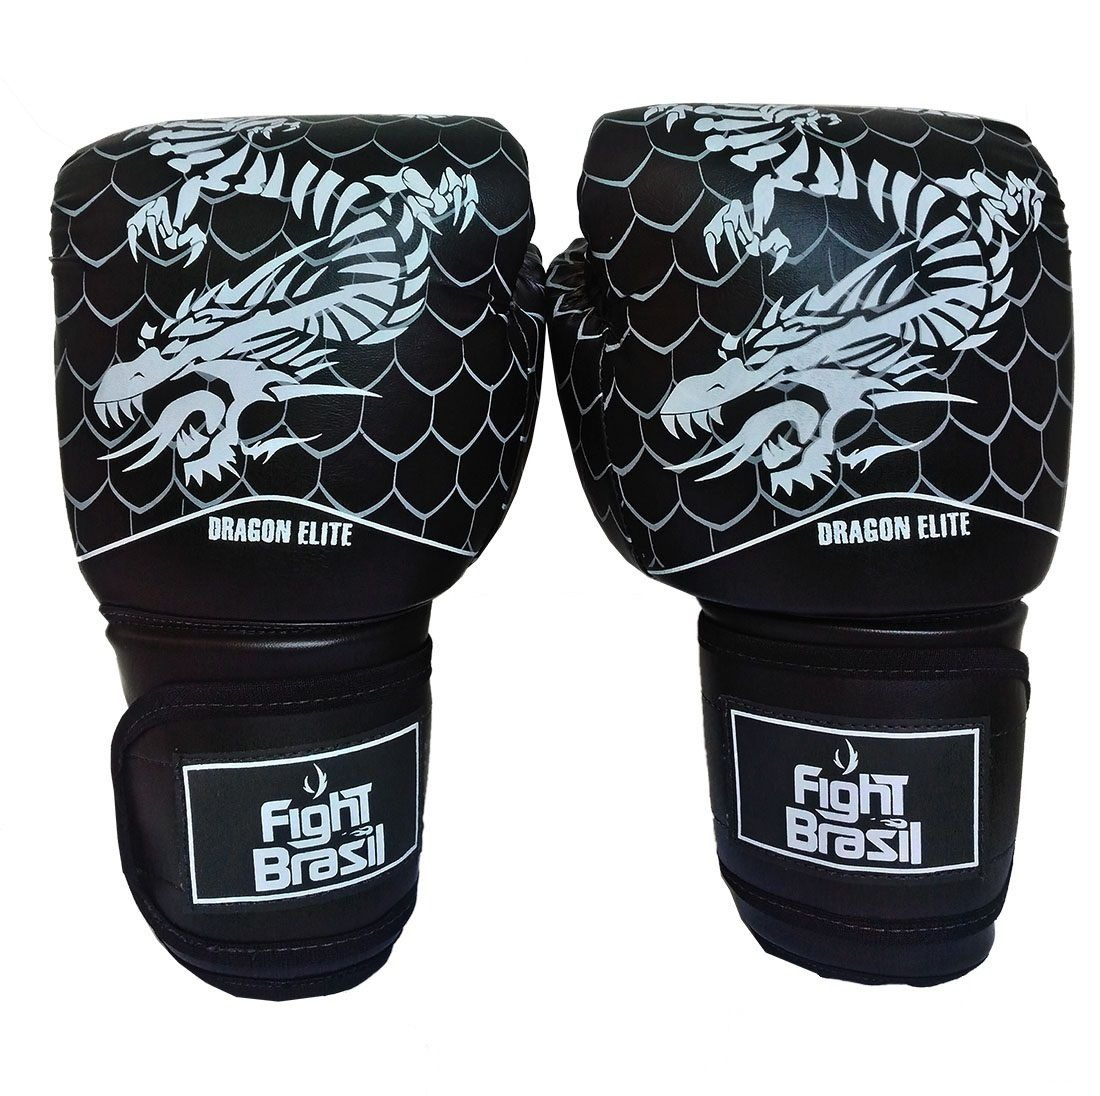 8d3cec837 luva boxe luva muay thai 14 oz fight brasil dragon elite. Carregando zoom.